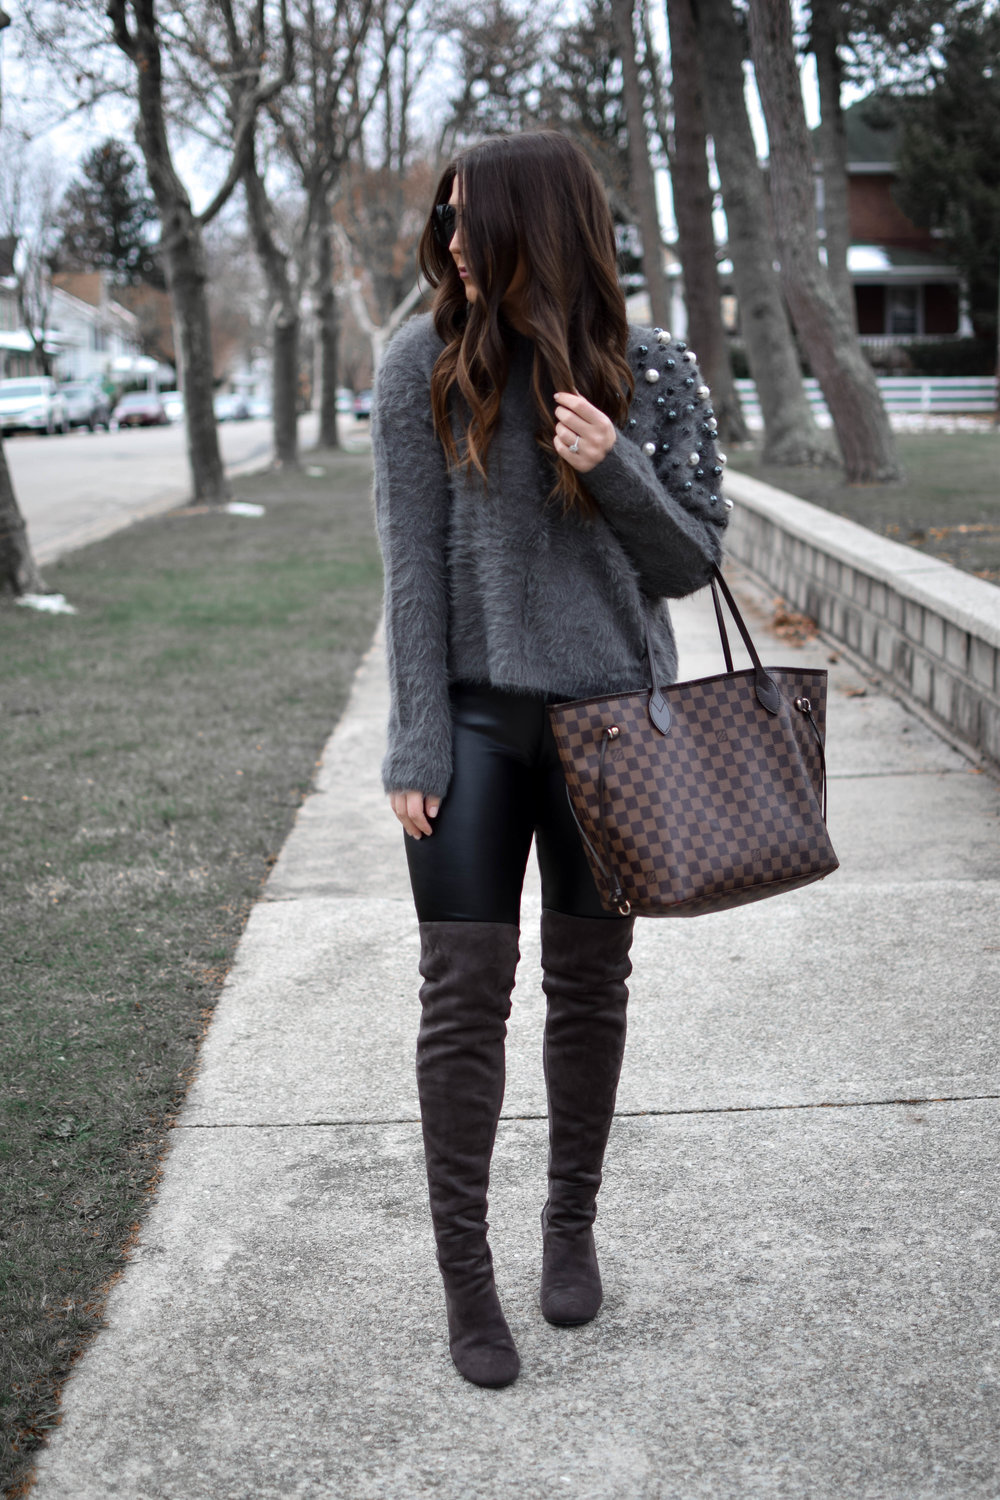 How to Style an Embellished Sweater | Pine Barren Beauty | winter outfit idea, winter outfit inspiration, winter fashion, holiday outfits idea, embellished sweater, sweater with pearls, faux leather leggings, over the knee boots